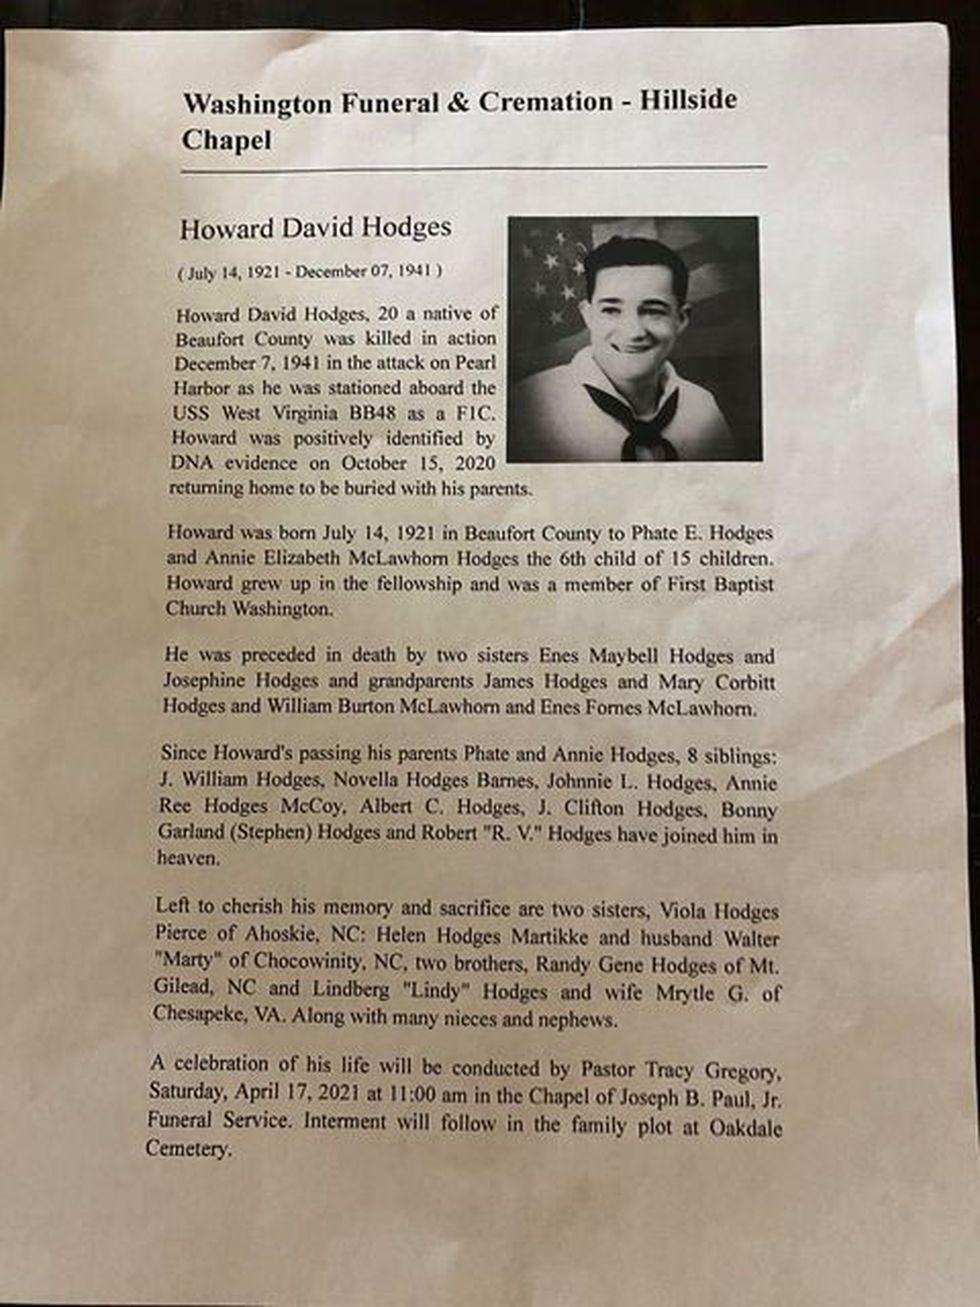 Obituary of Howard Hodges, one of the many missing shipmen in the Japanese attack on Pearl...